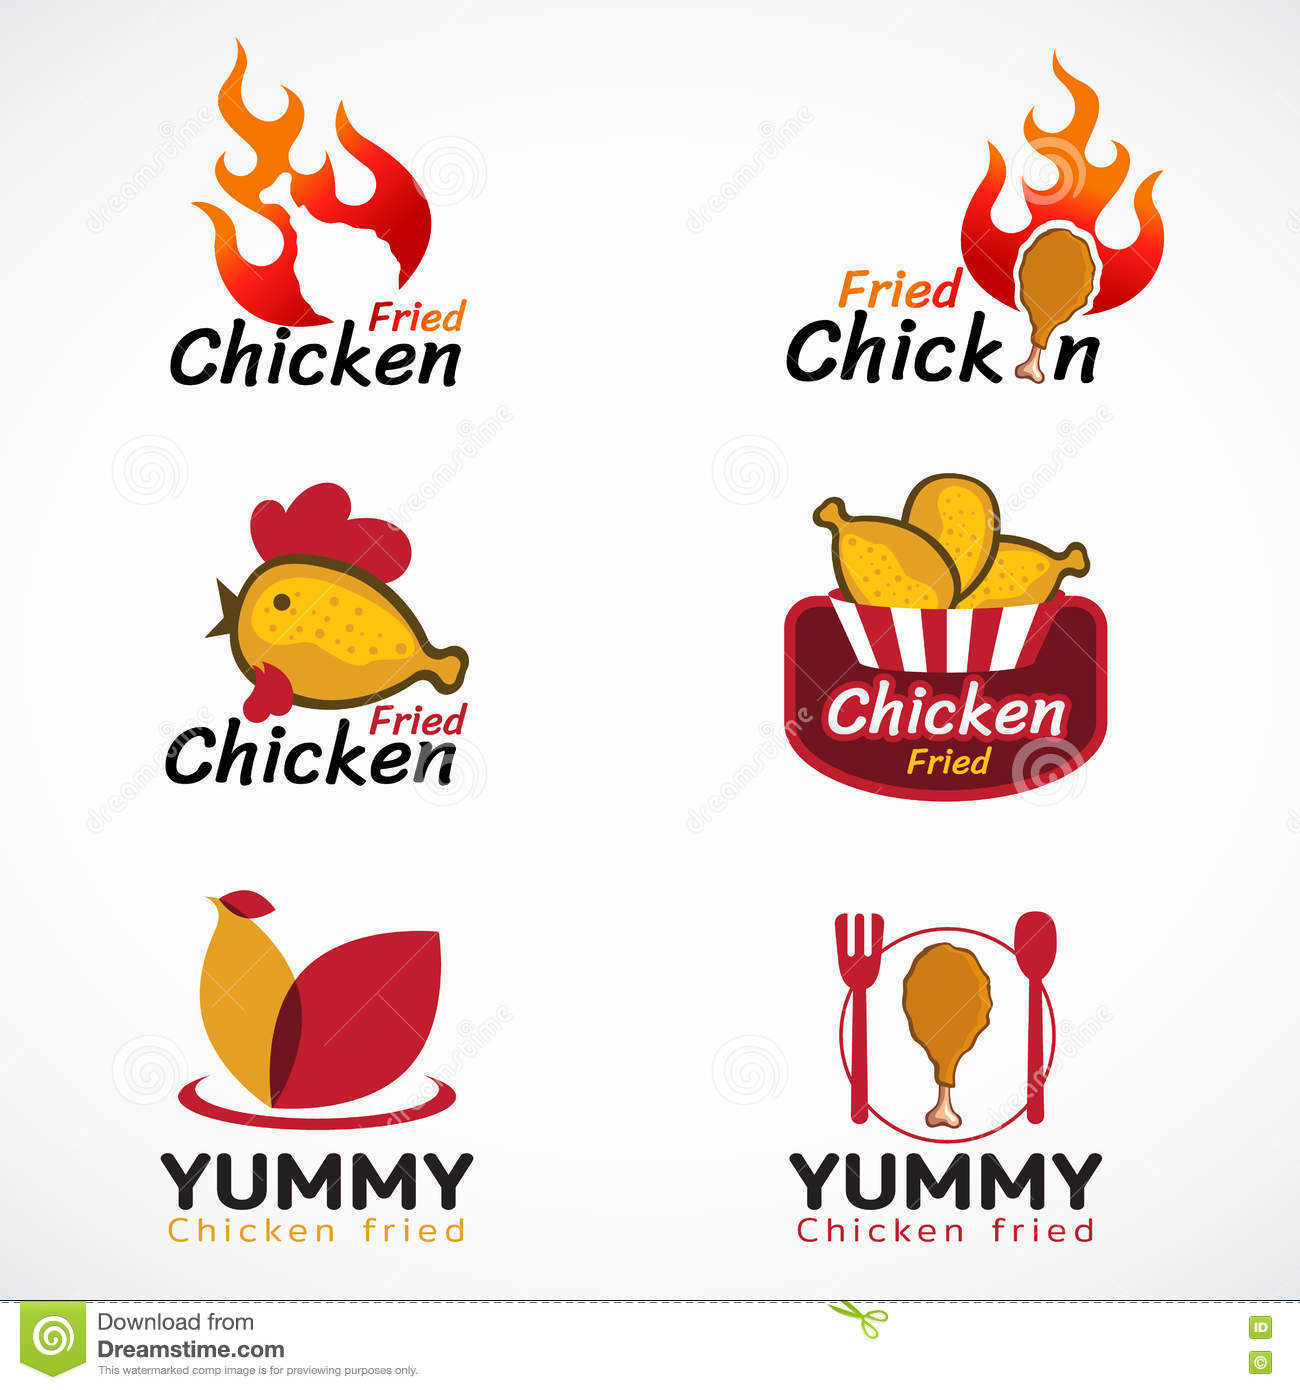 Fried Chicken Logos